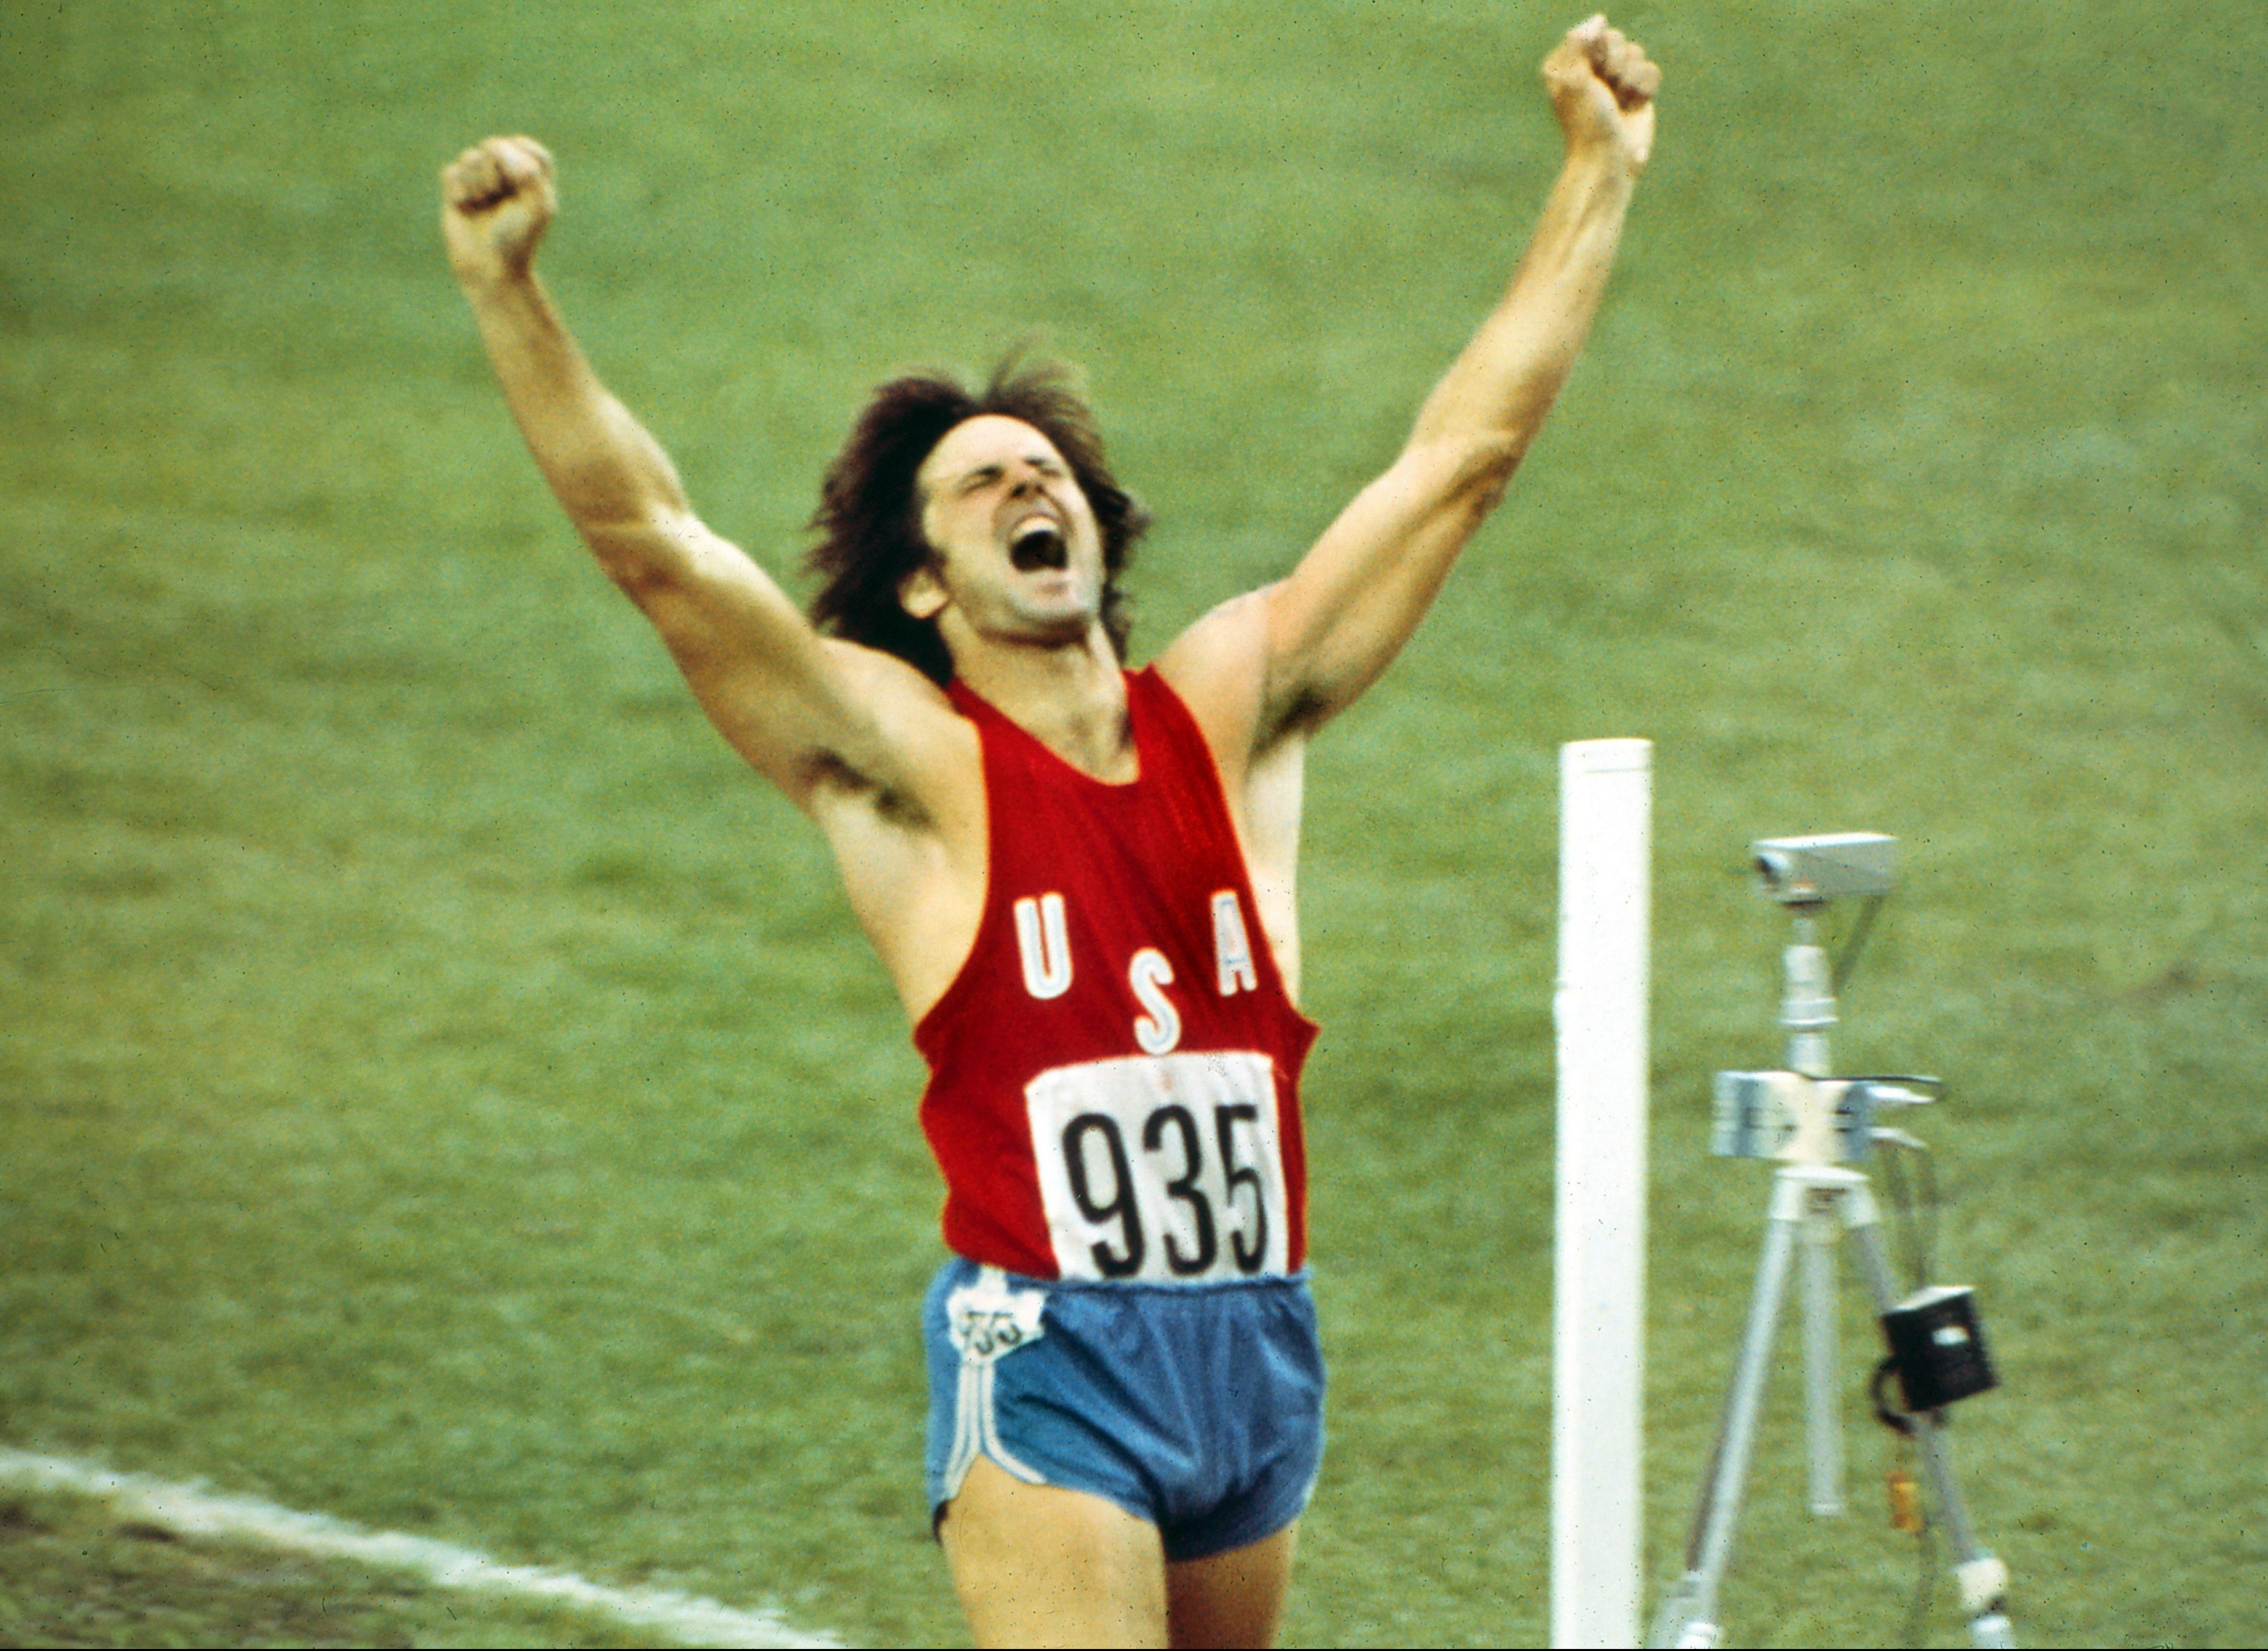 Bruce Jenner won Olympic decathlon gold at the 1976 Games and later transitioned to become the world famous reality TV star Caitlyn